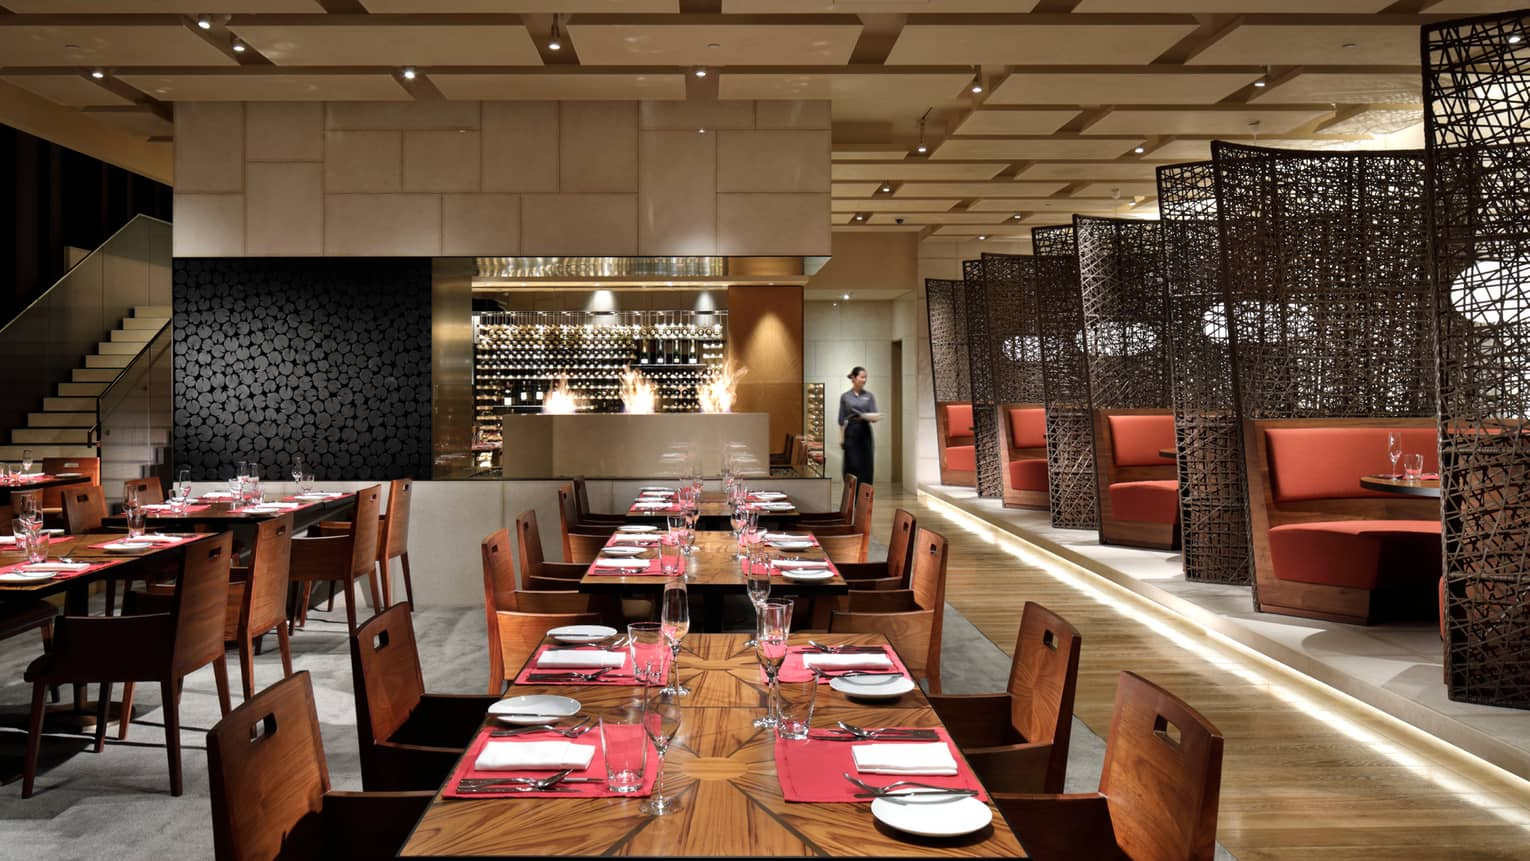 Modern dining room with rows of wood tables, large wine cellar, booths by black woven screens